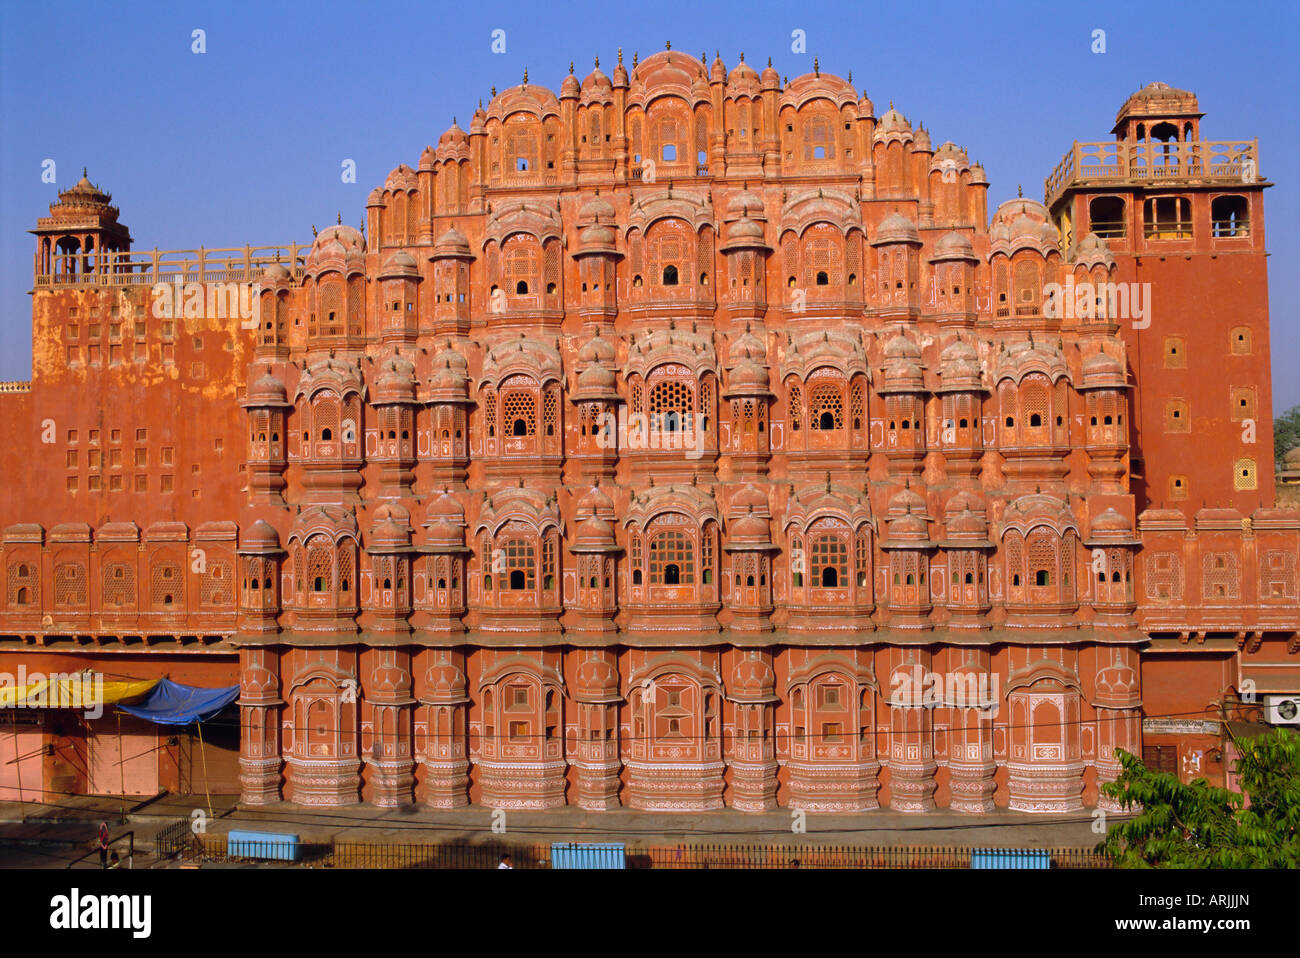 The Palace of the Winds, Hawa Mahal, Jaipur, Rajasthan, India, Asia - Stock Image